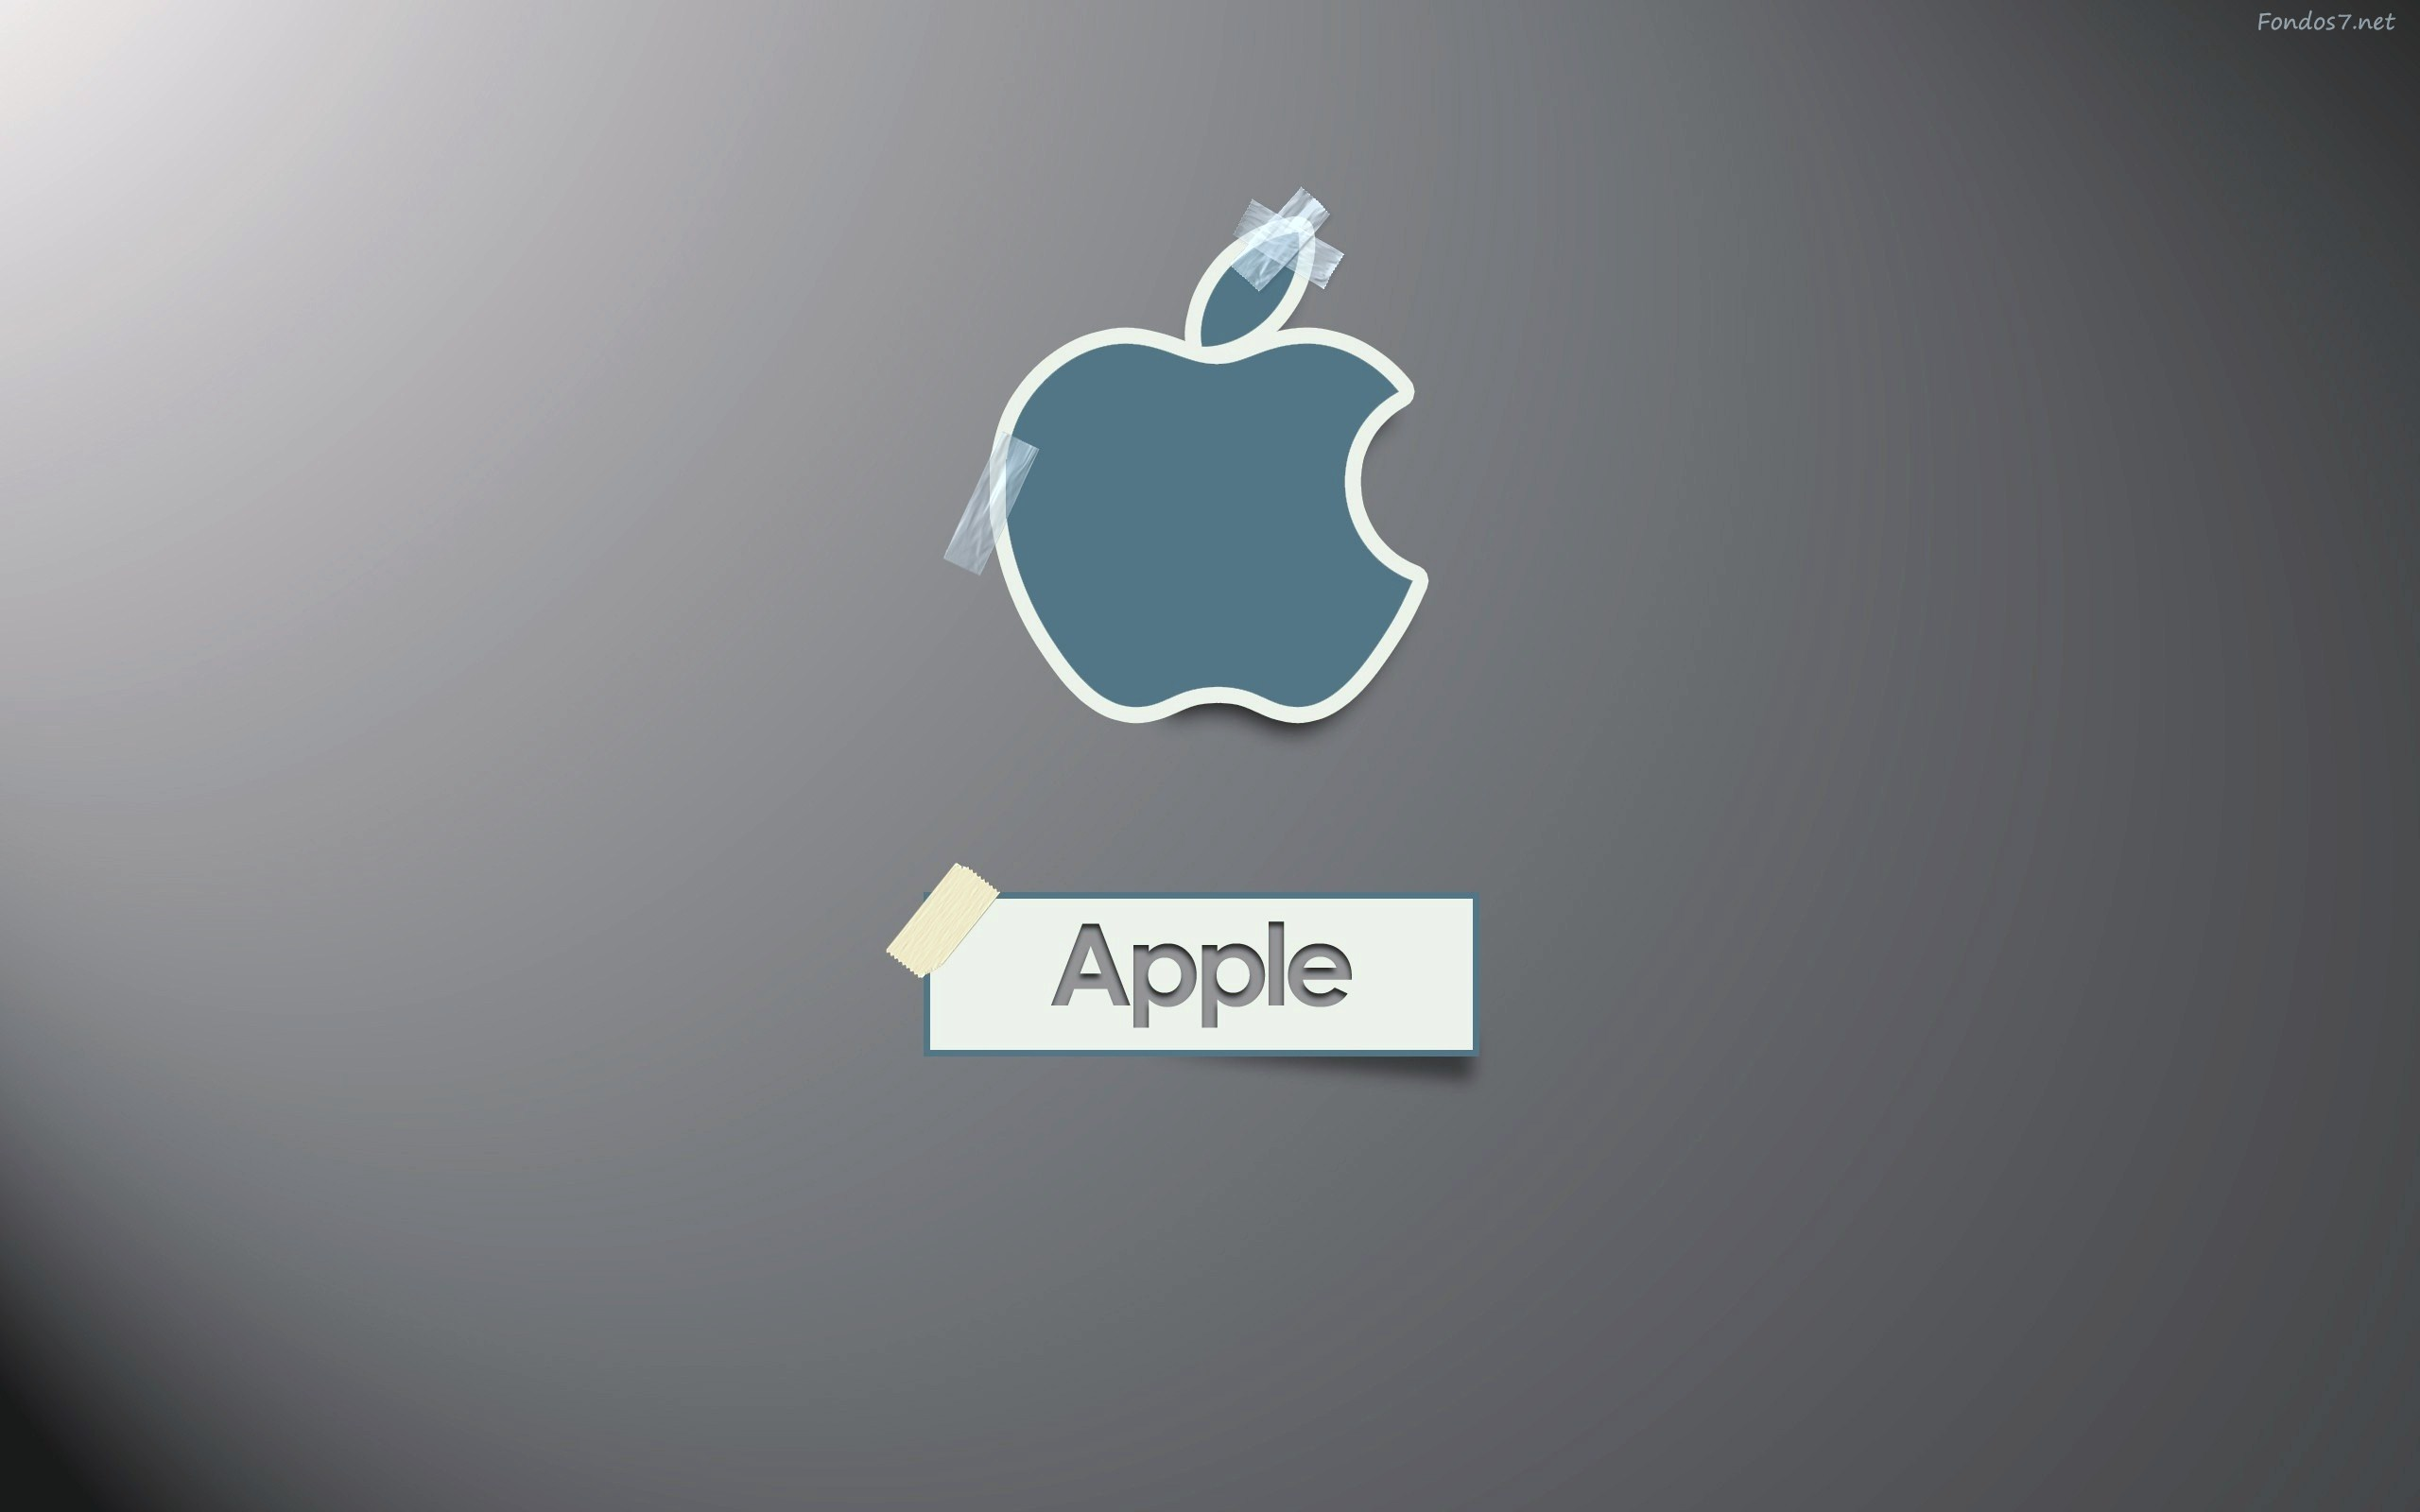 wallpapers 4k-hd Apple-alegorias.es (26)